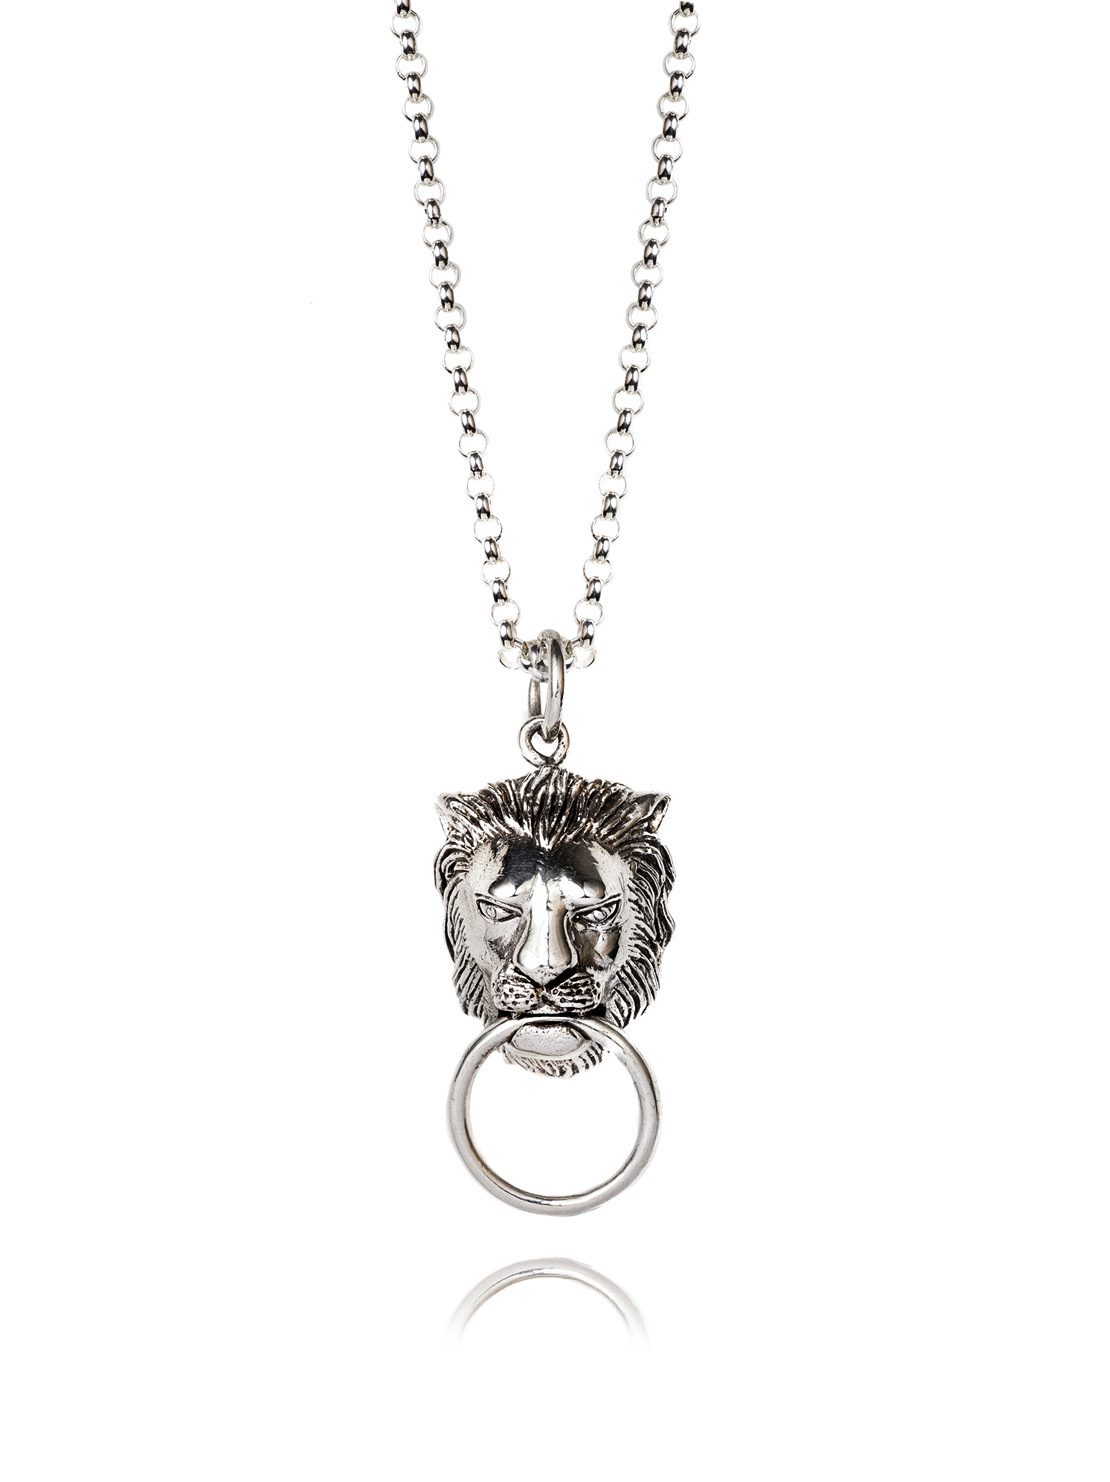 Silver Lion Door Knocker Necklace On Belcher Chain